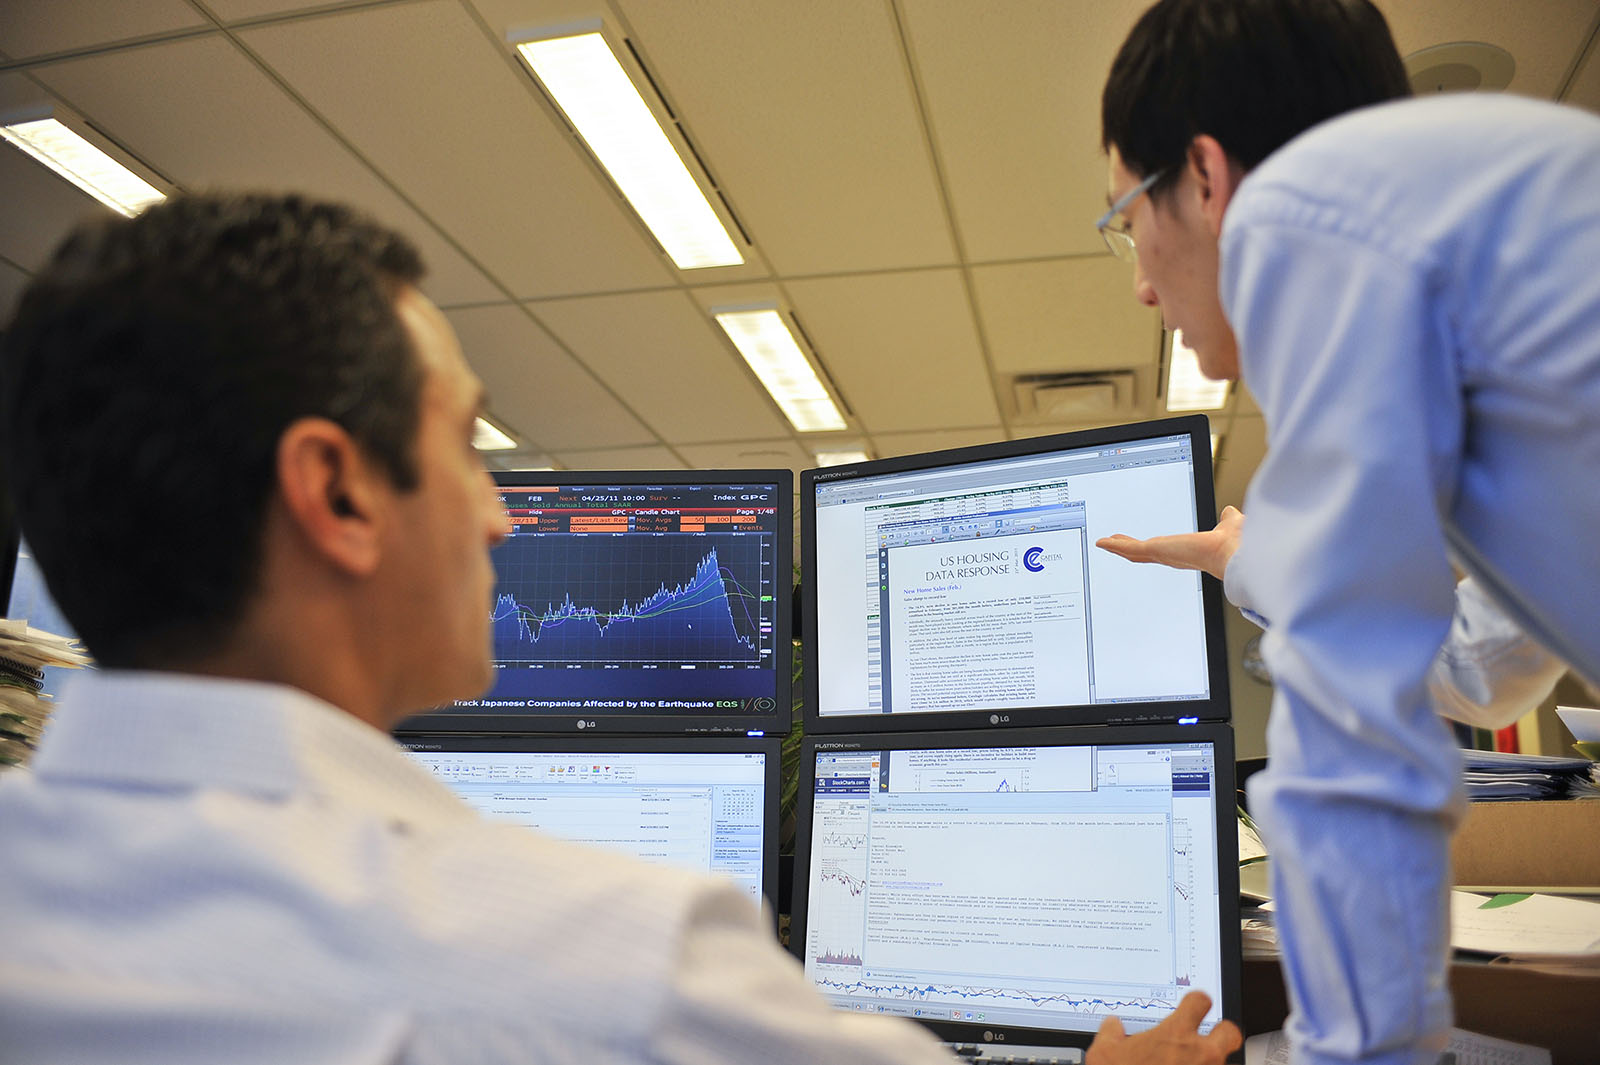 Two business analysts viewing data on computer screens